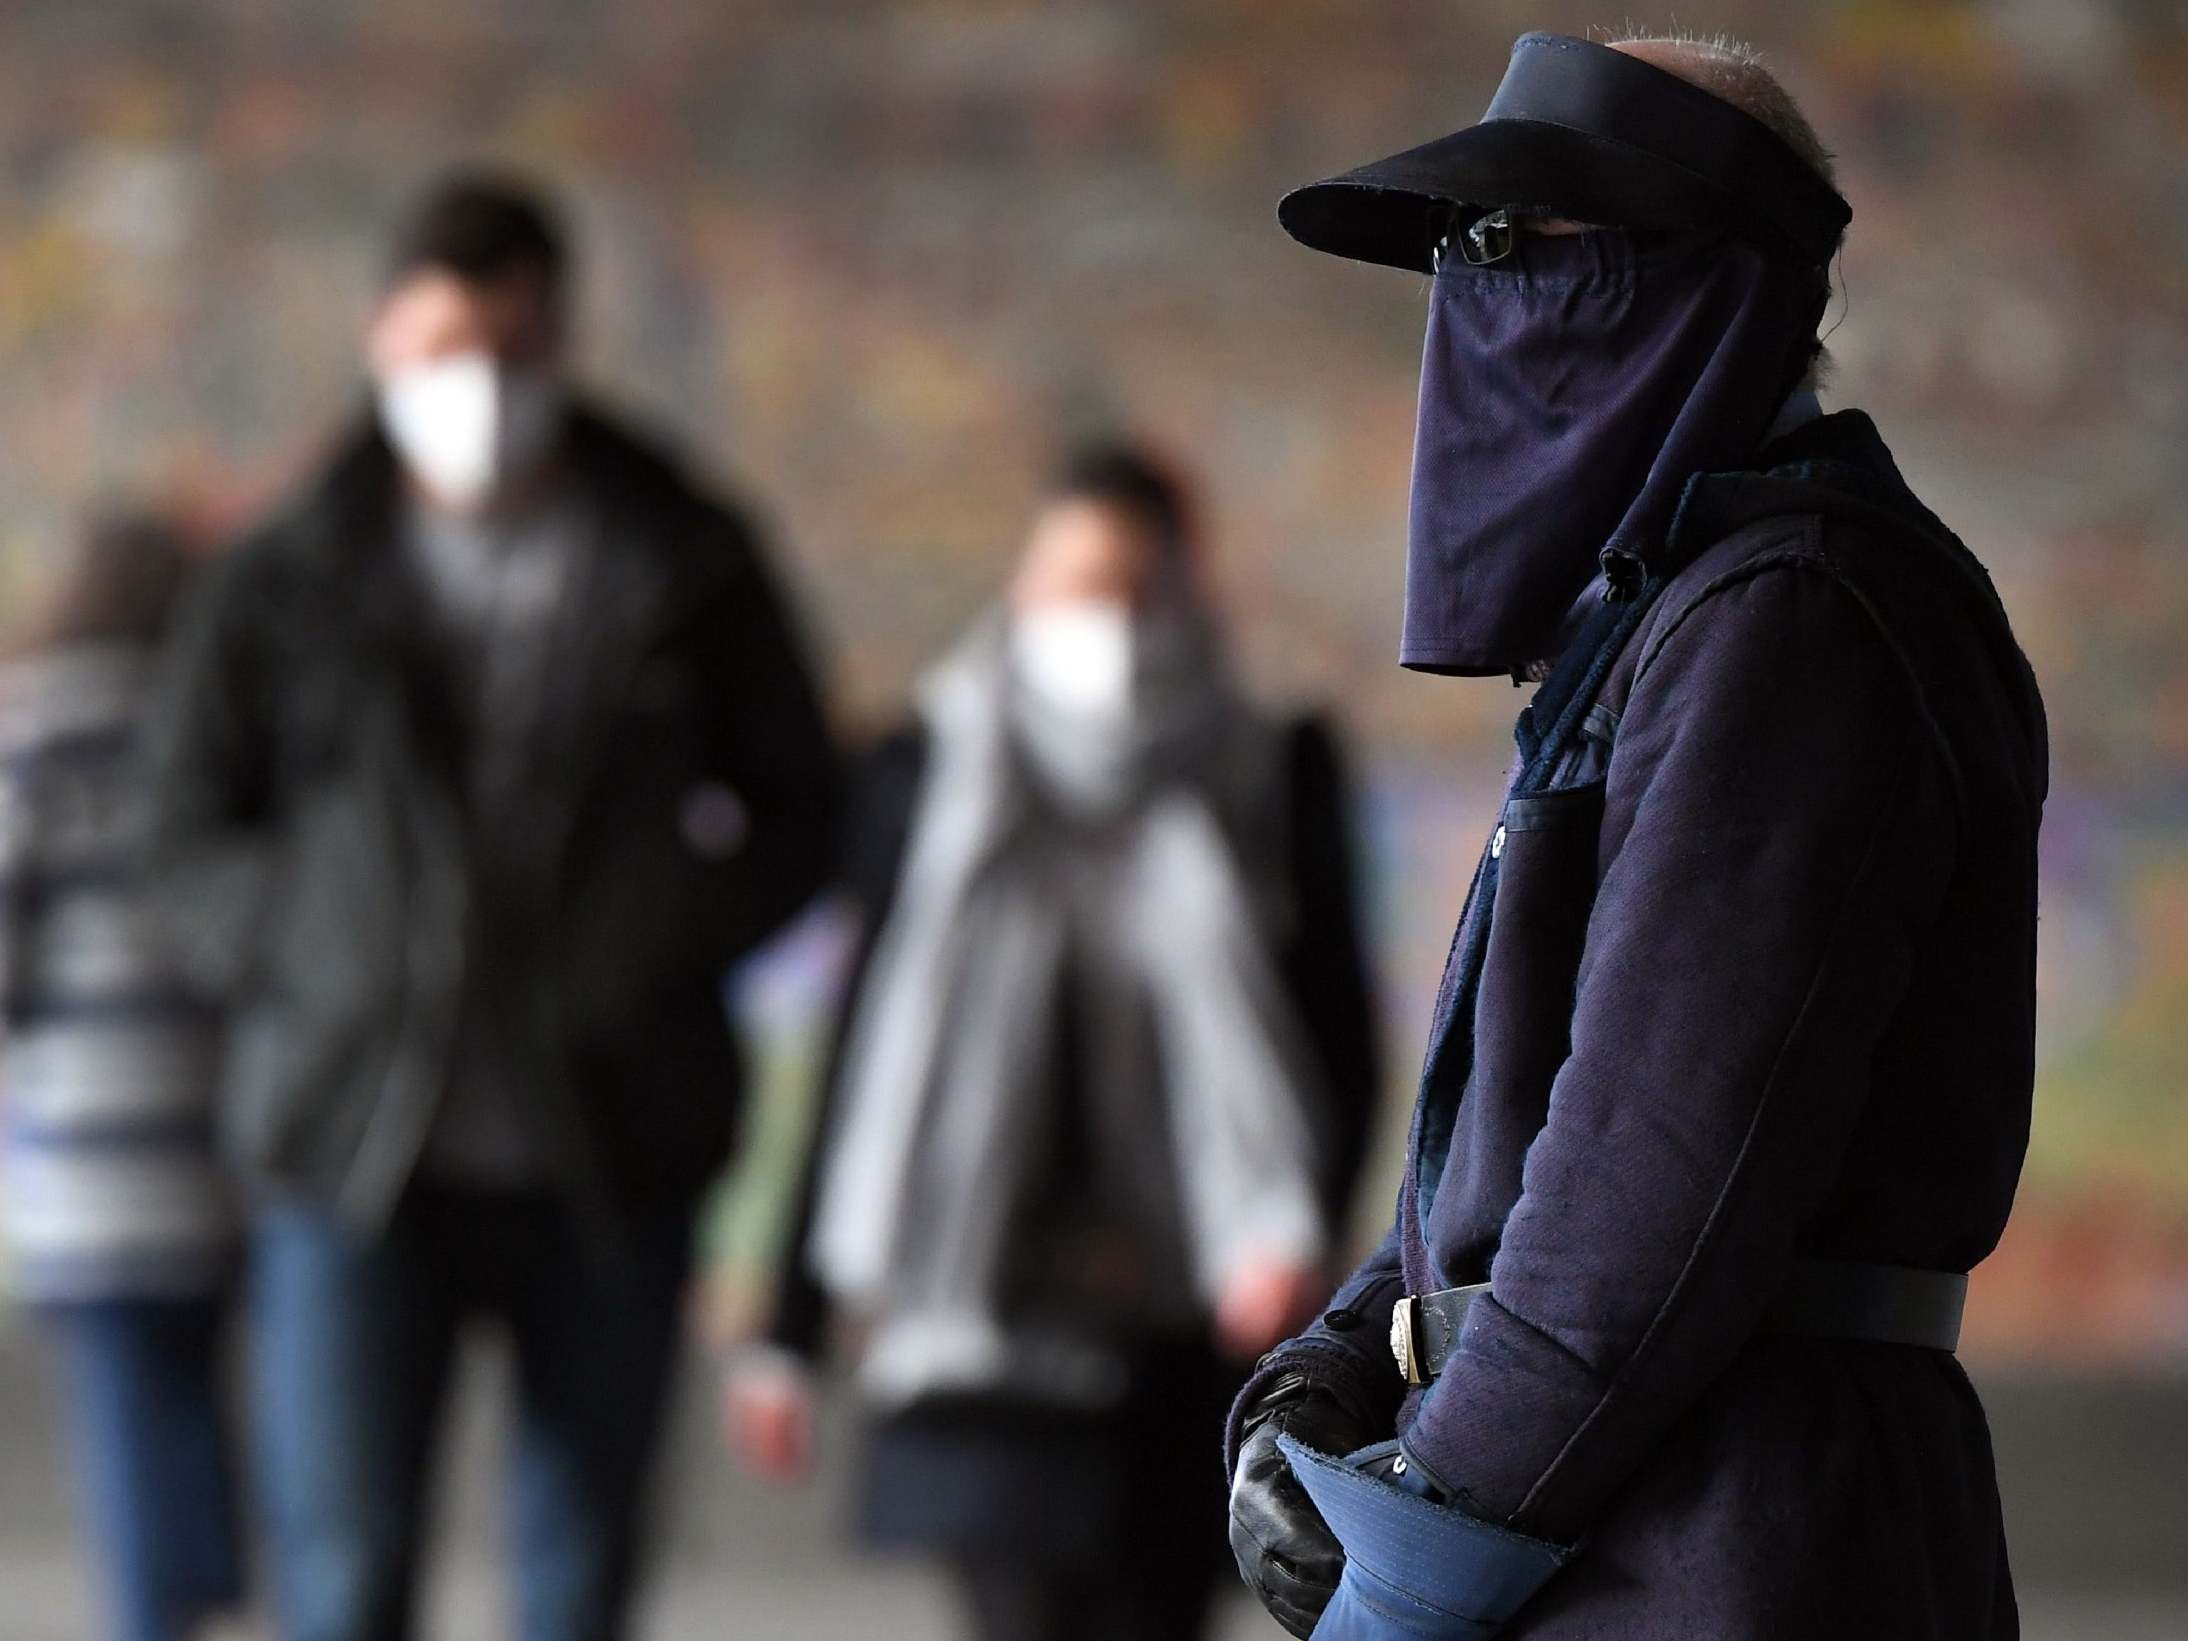 'We've just got to suck it up': Compulsory masks law comes into effect in hardest-hit Australian city thumbnail